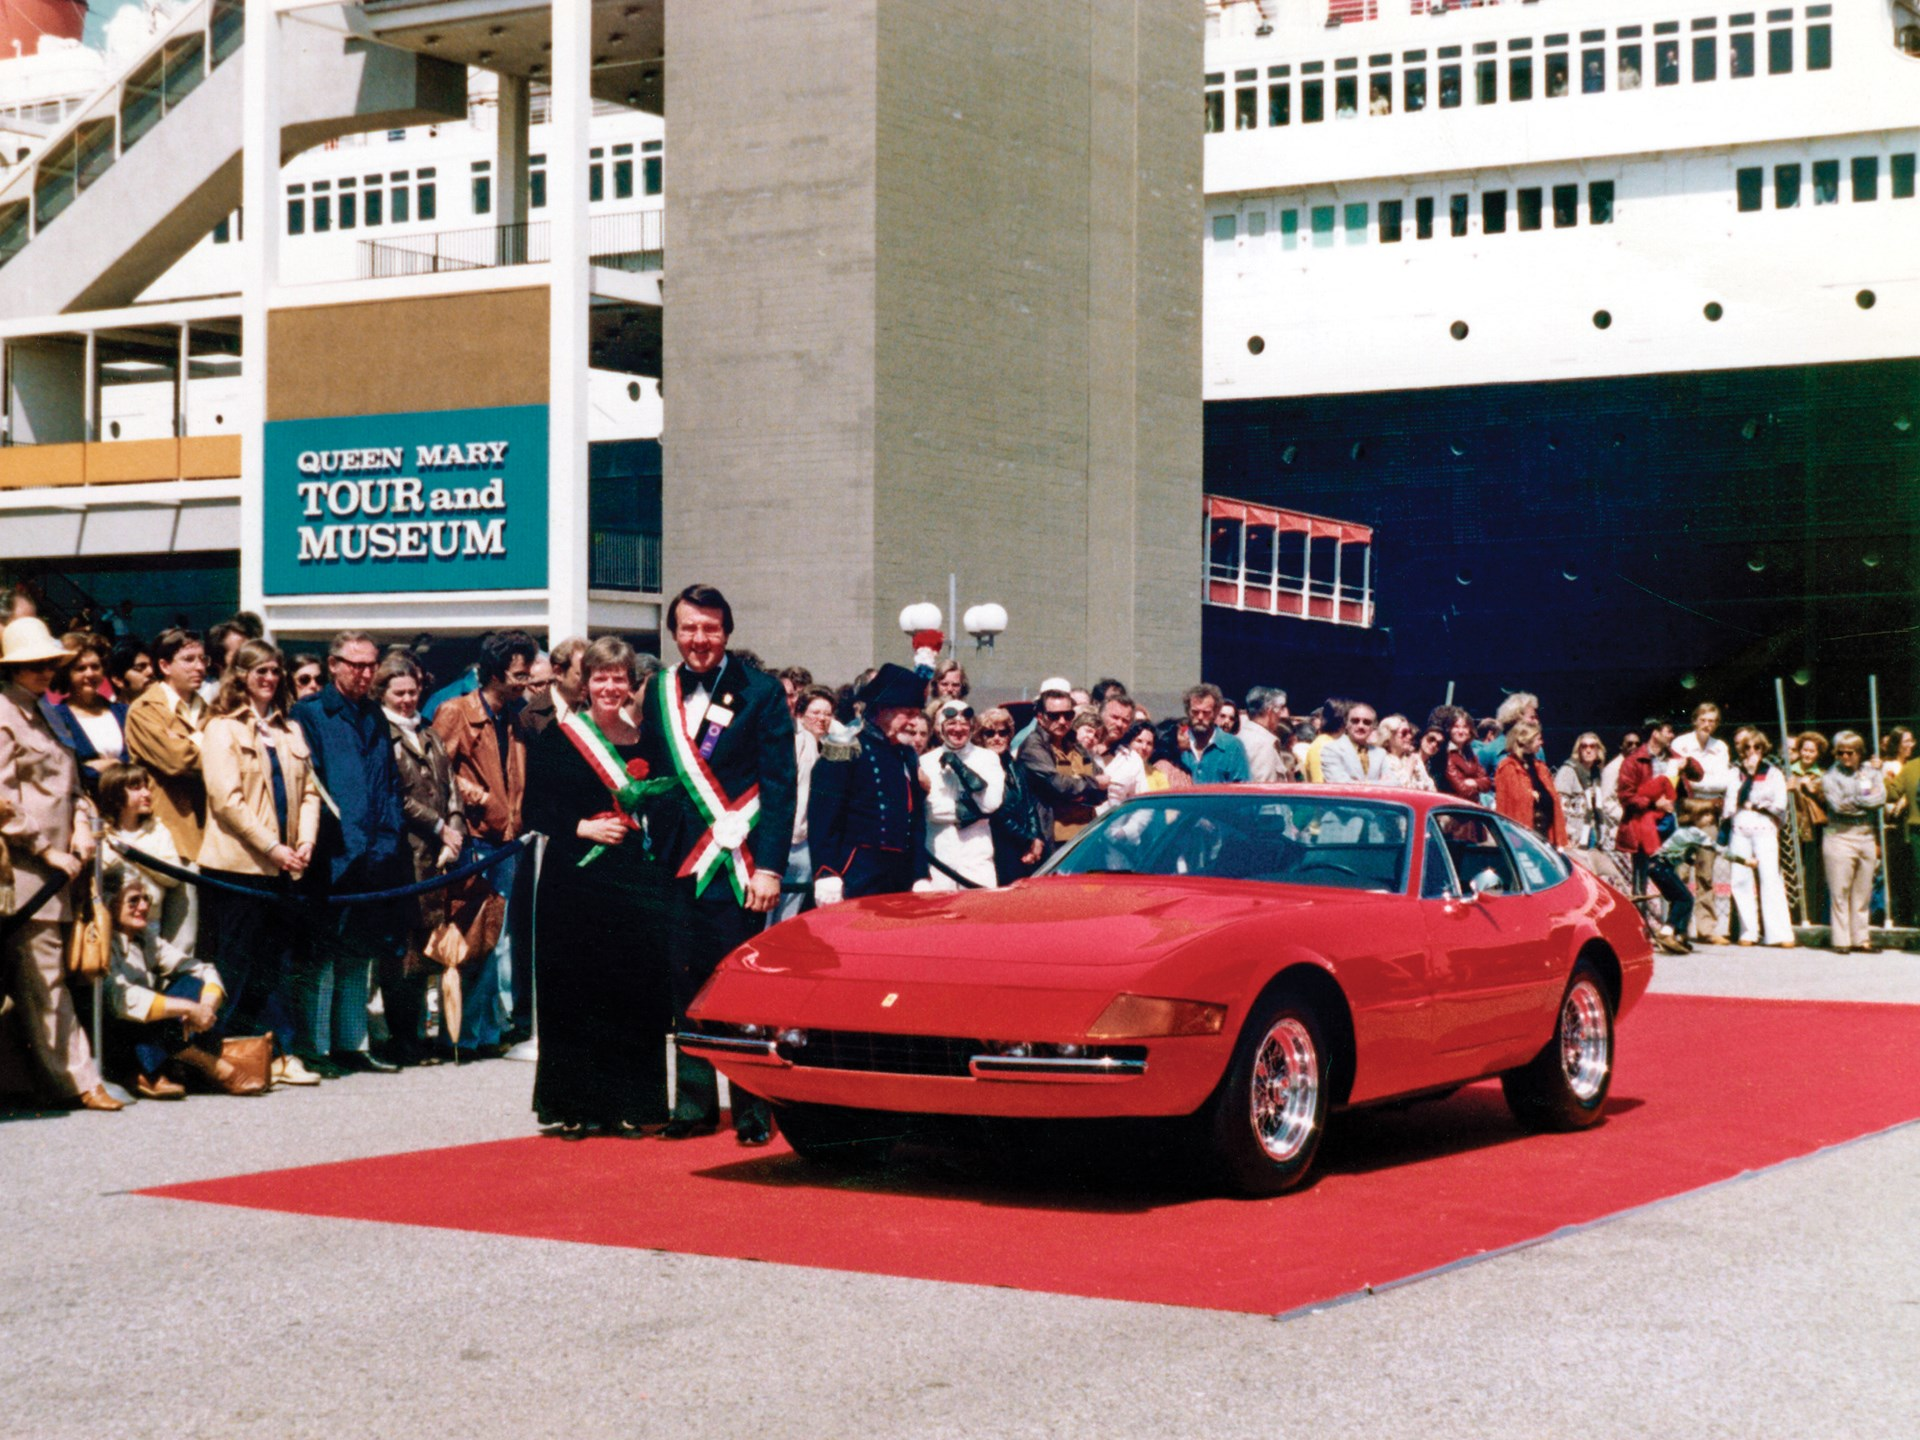 The Mastersons show off their Daytona after winning Best of Show at the Queen Mary Concours d'Elegance in 1988.